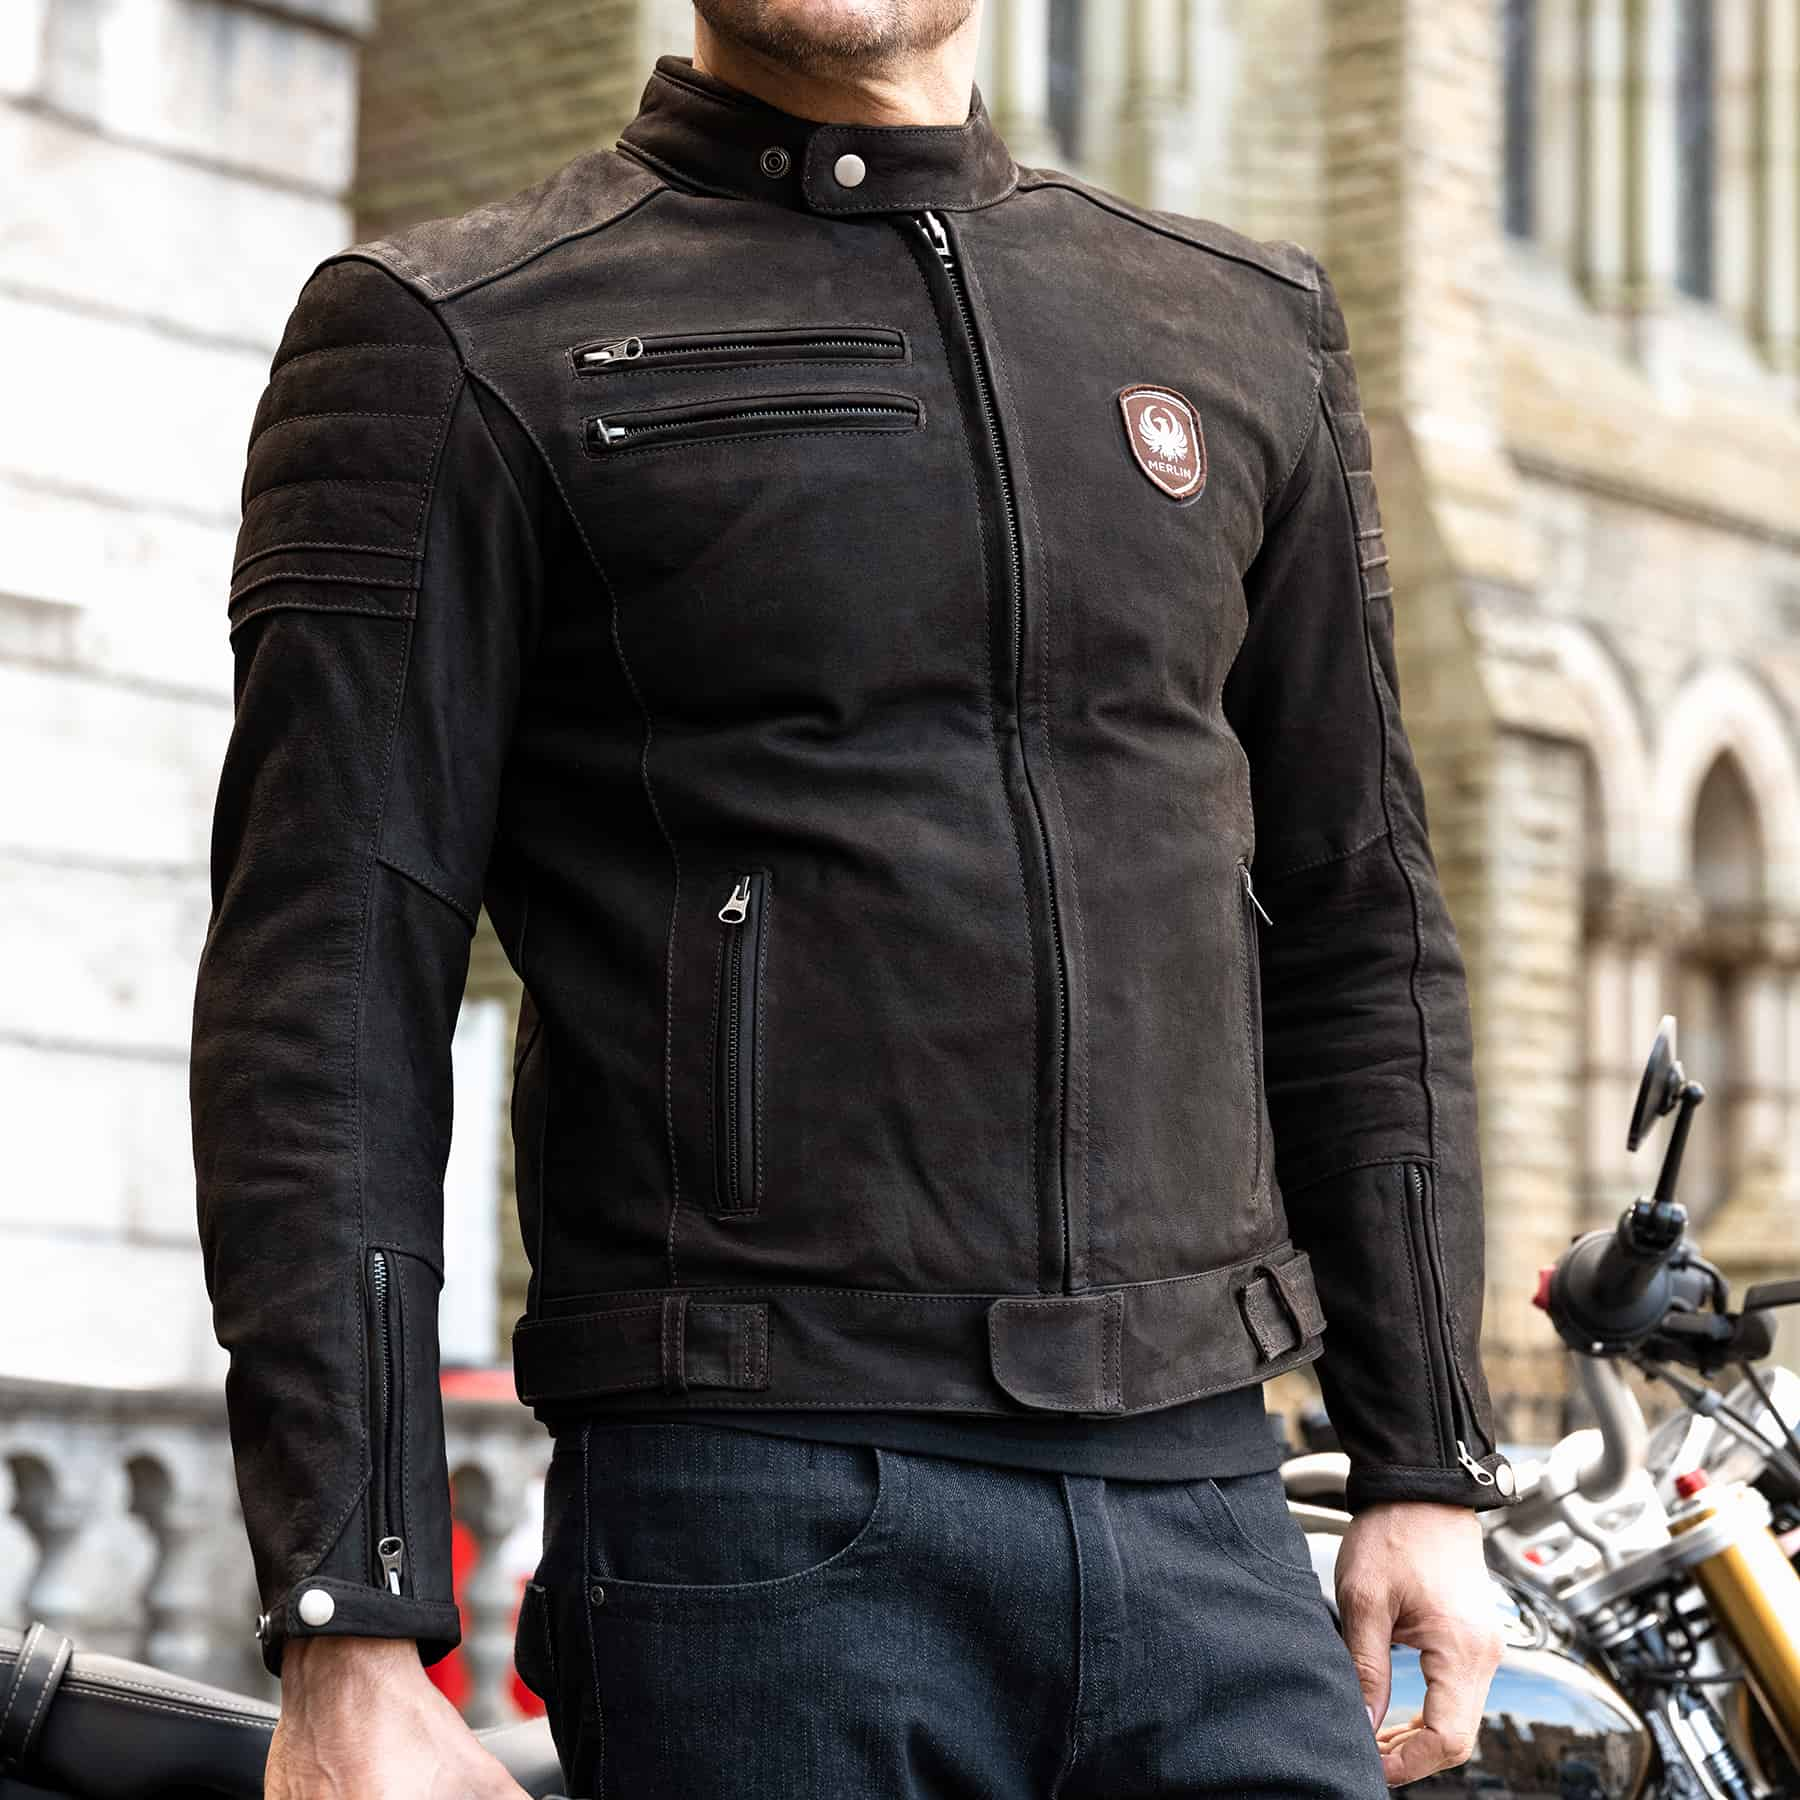 Merlin Alton leather jacket in brown lifestyle image